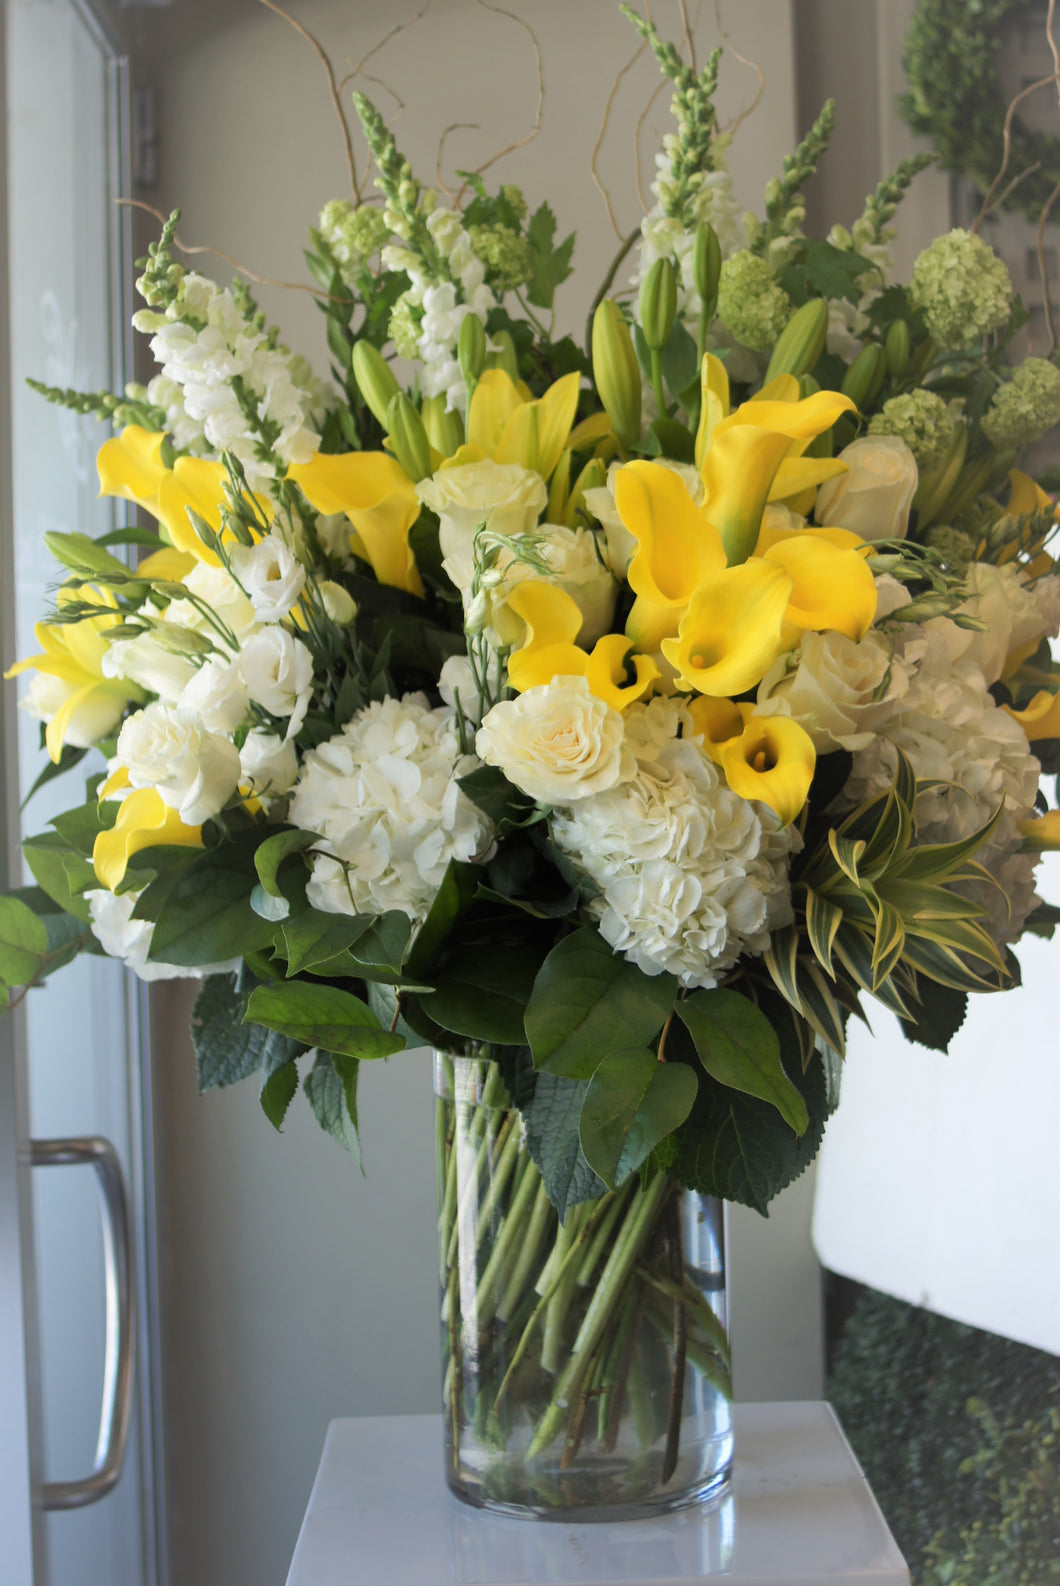 FNV72 - Classic White, Yellow and Green Vase Arrangement - Flowerplustoronto